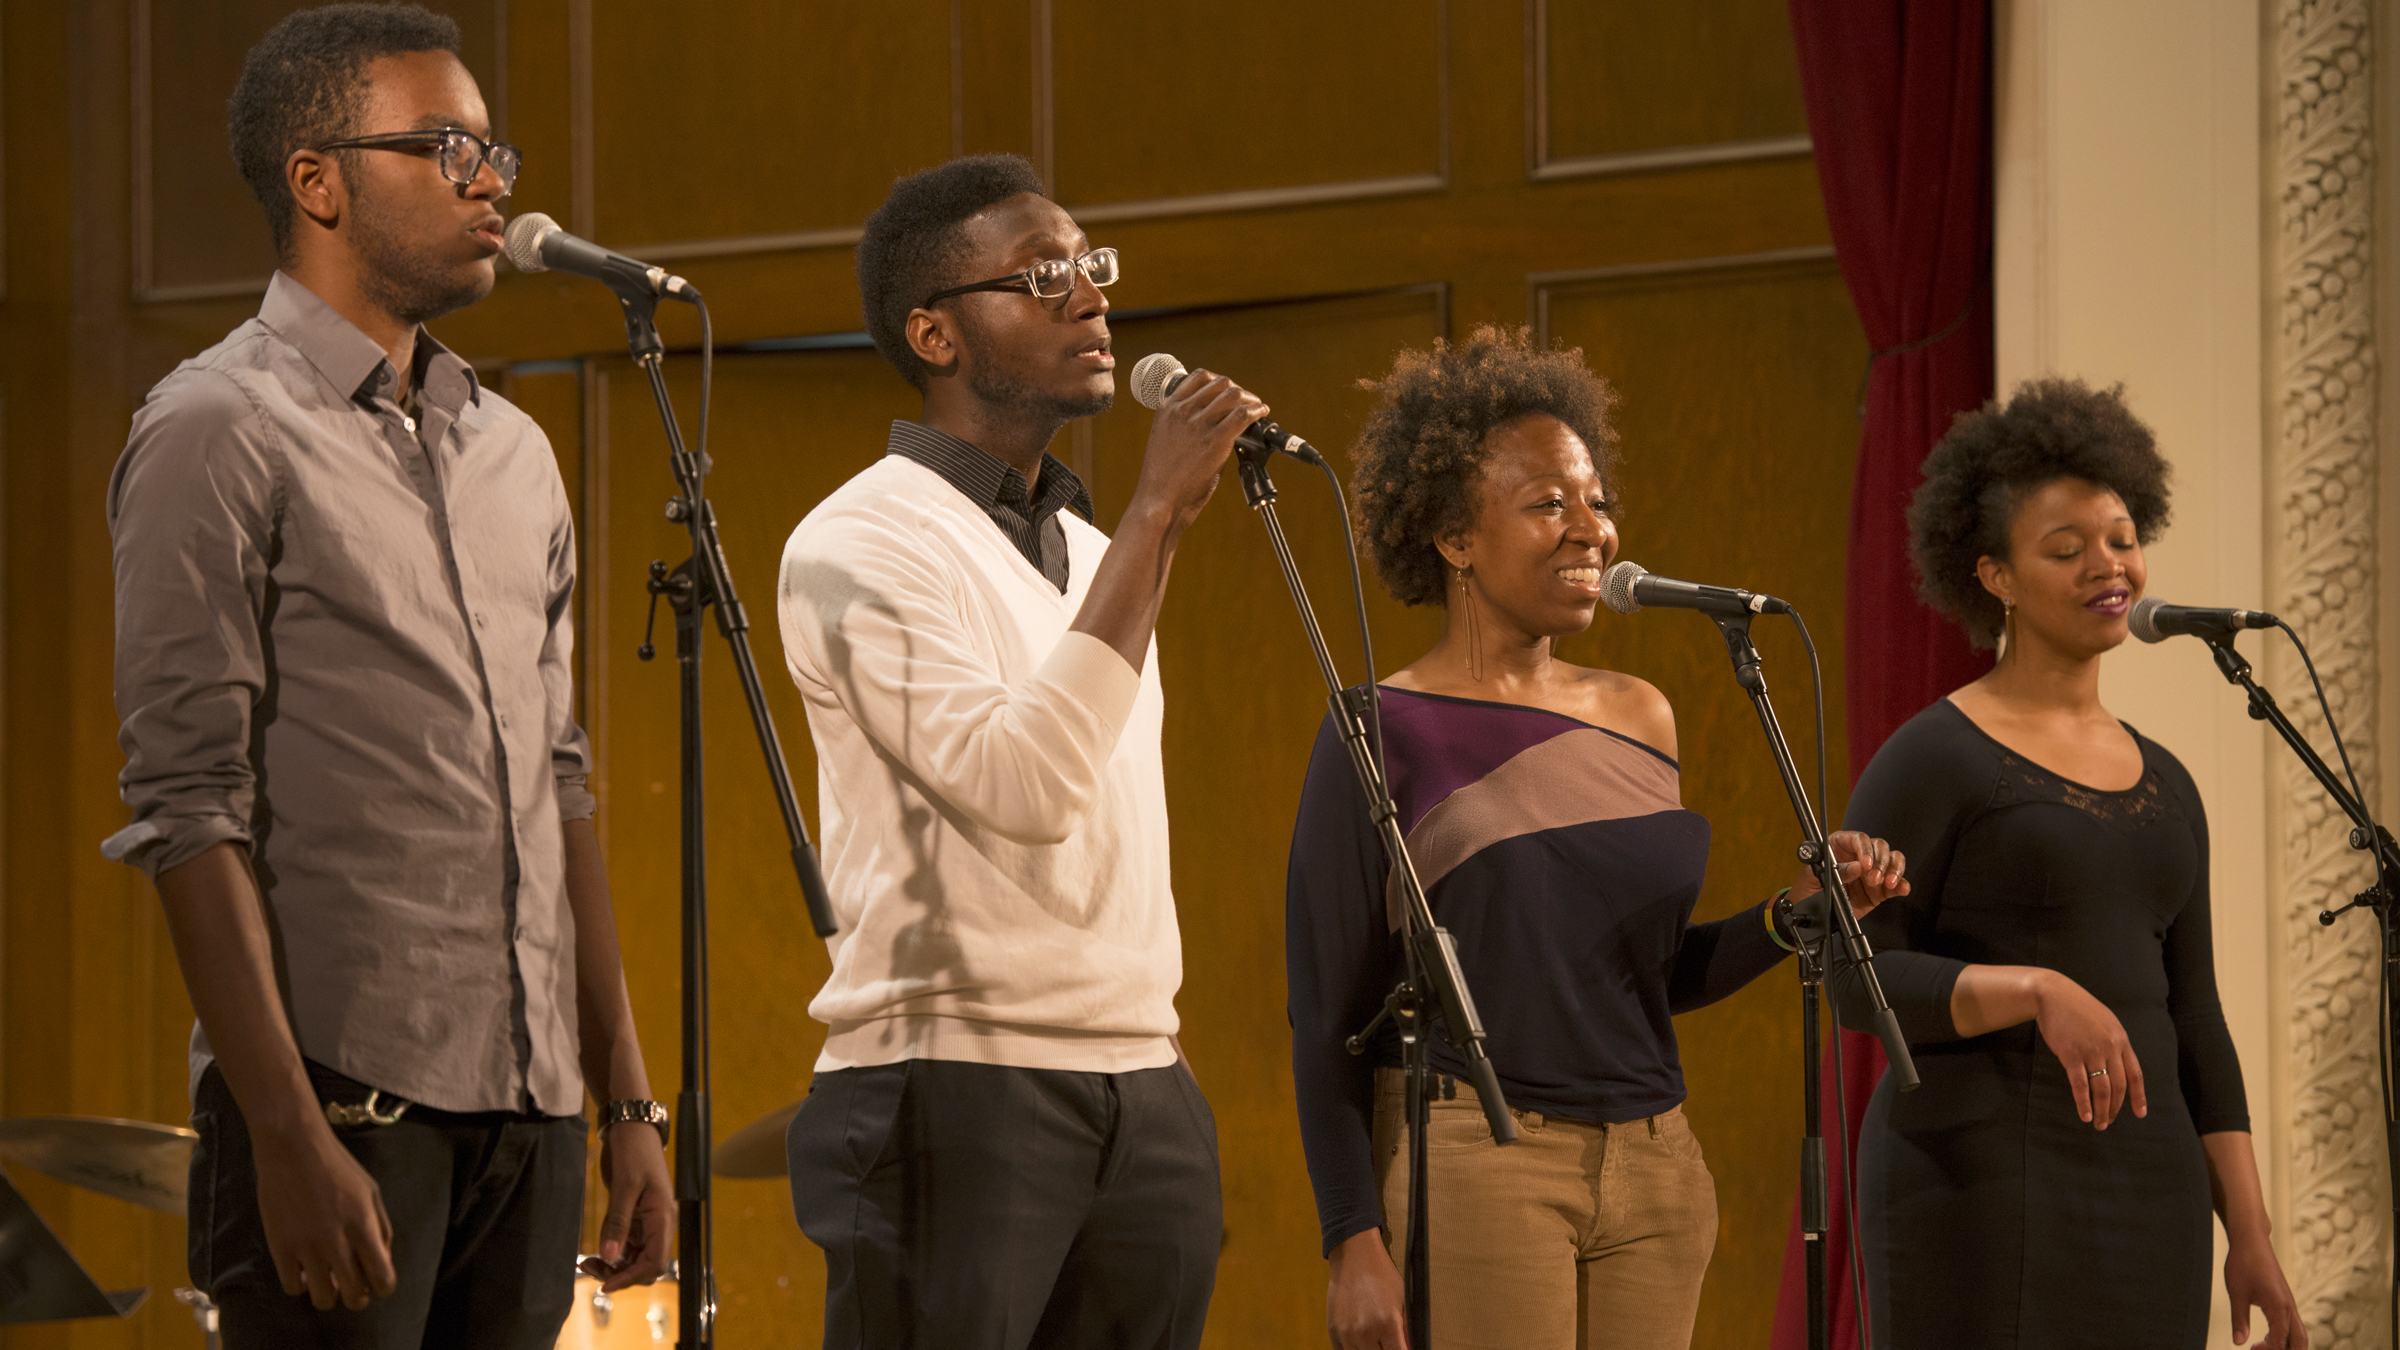 A jazz vocal quartet performs